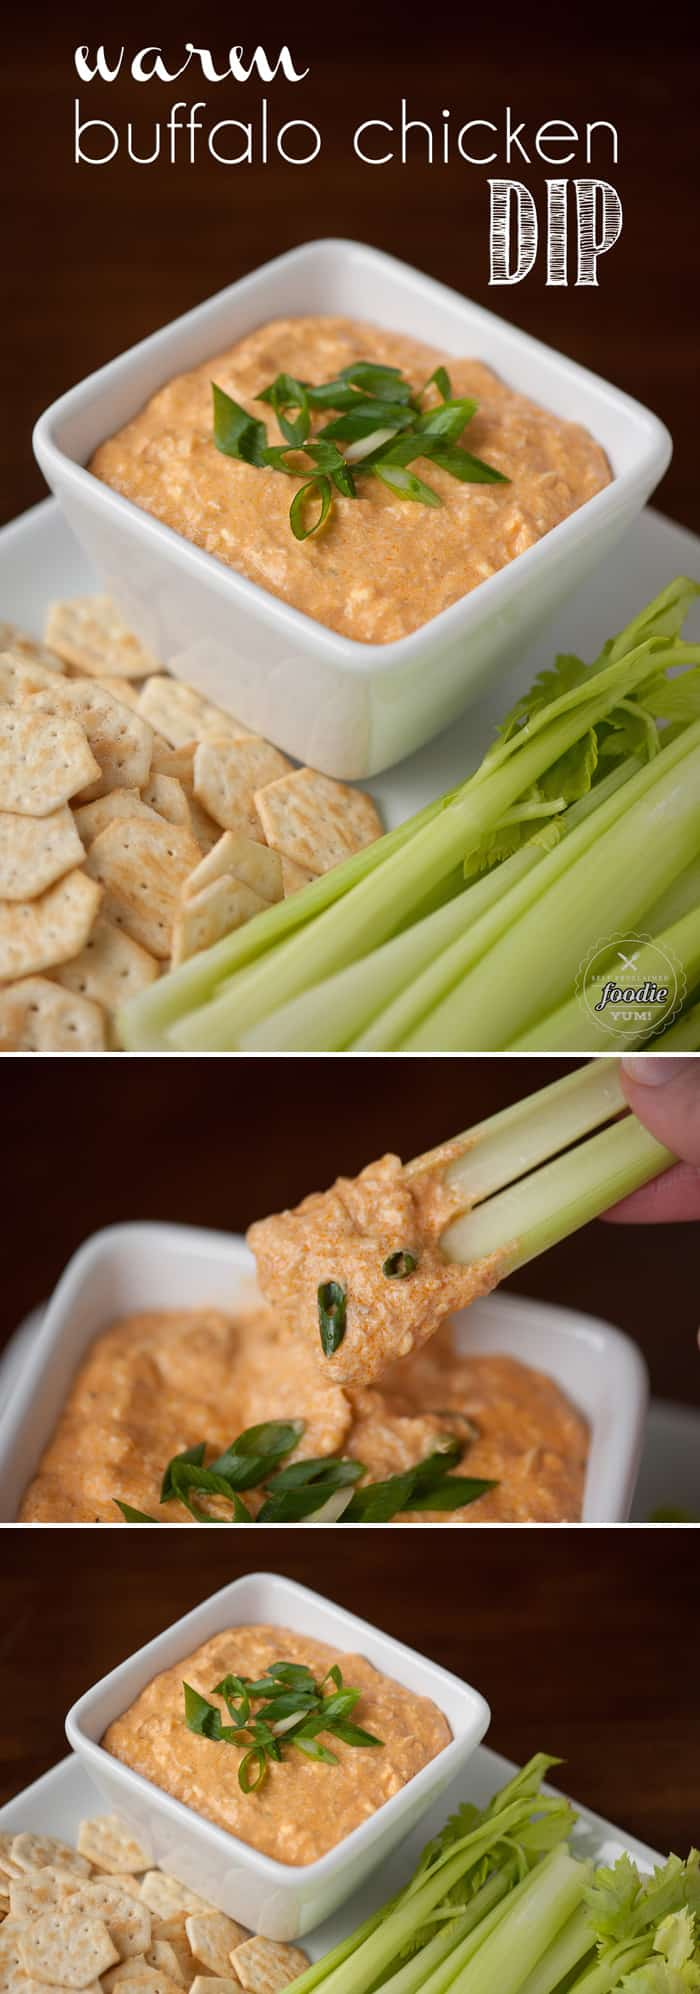 This Warm Buffalo Chicken Dip is super easy to make and is so tasty that it will be the hit at any tailgating or game day get together.